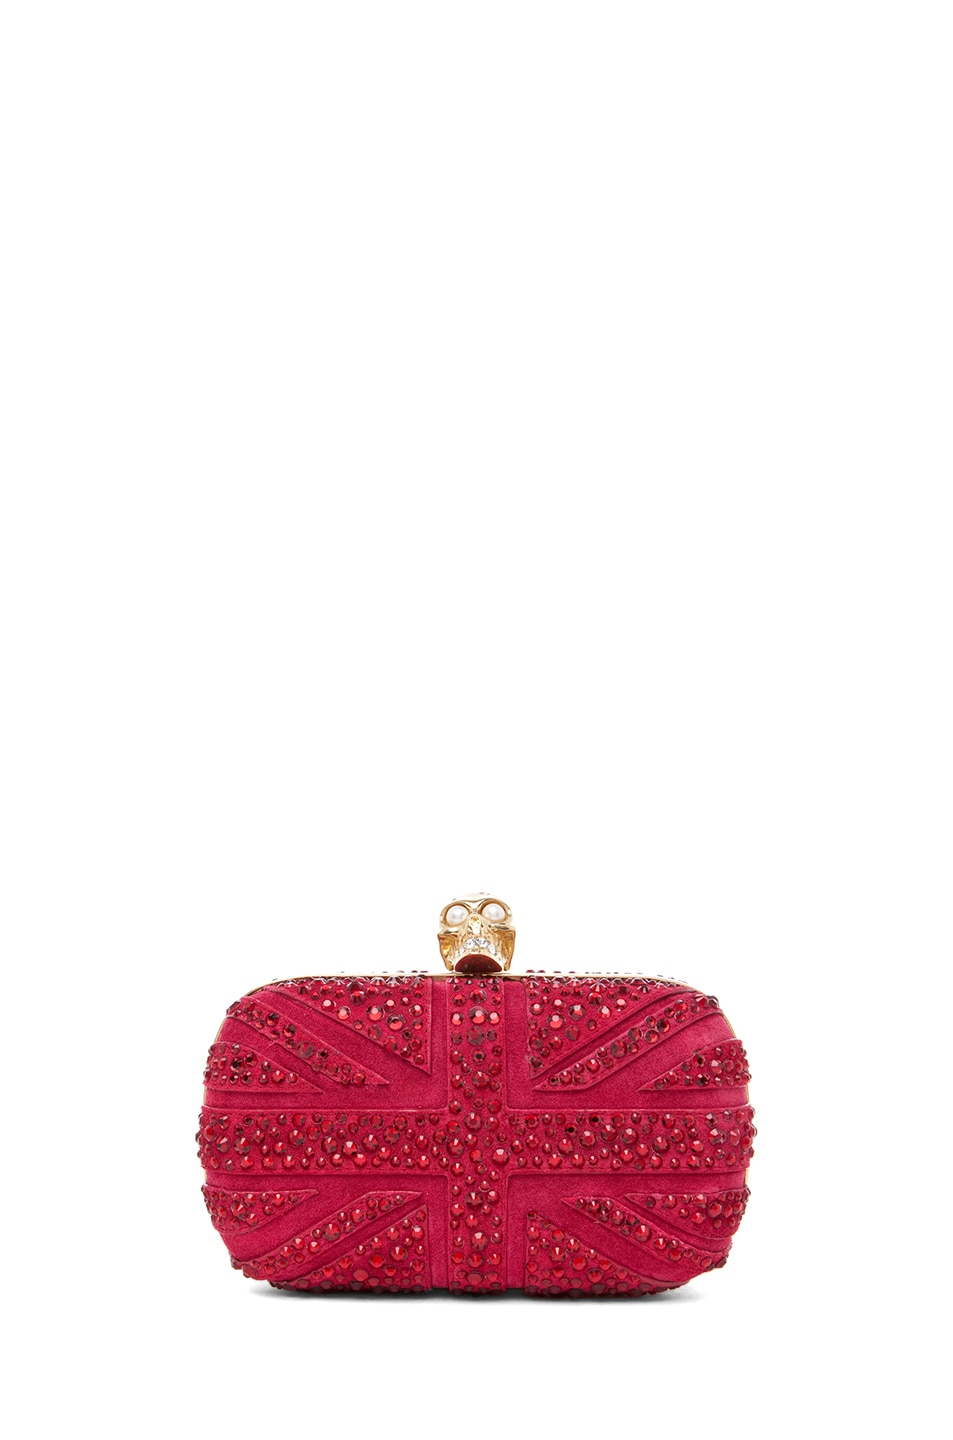 Image 1 of Alexander McQueen Britannia Skull Box Clutch in Dark Cherry